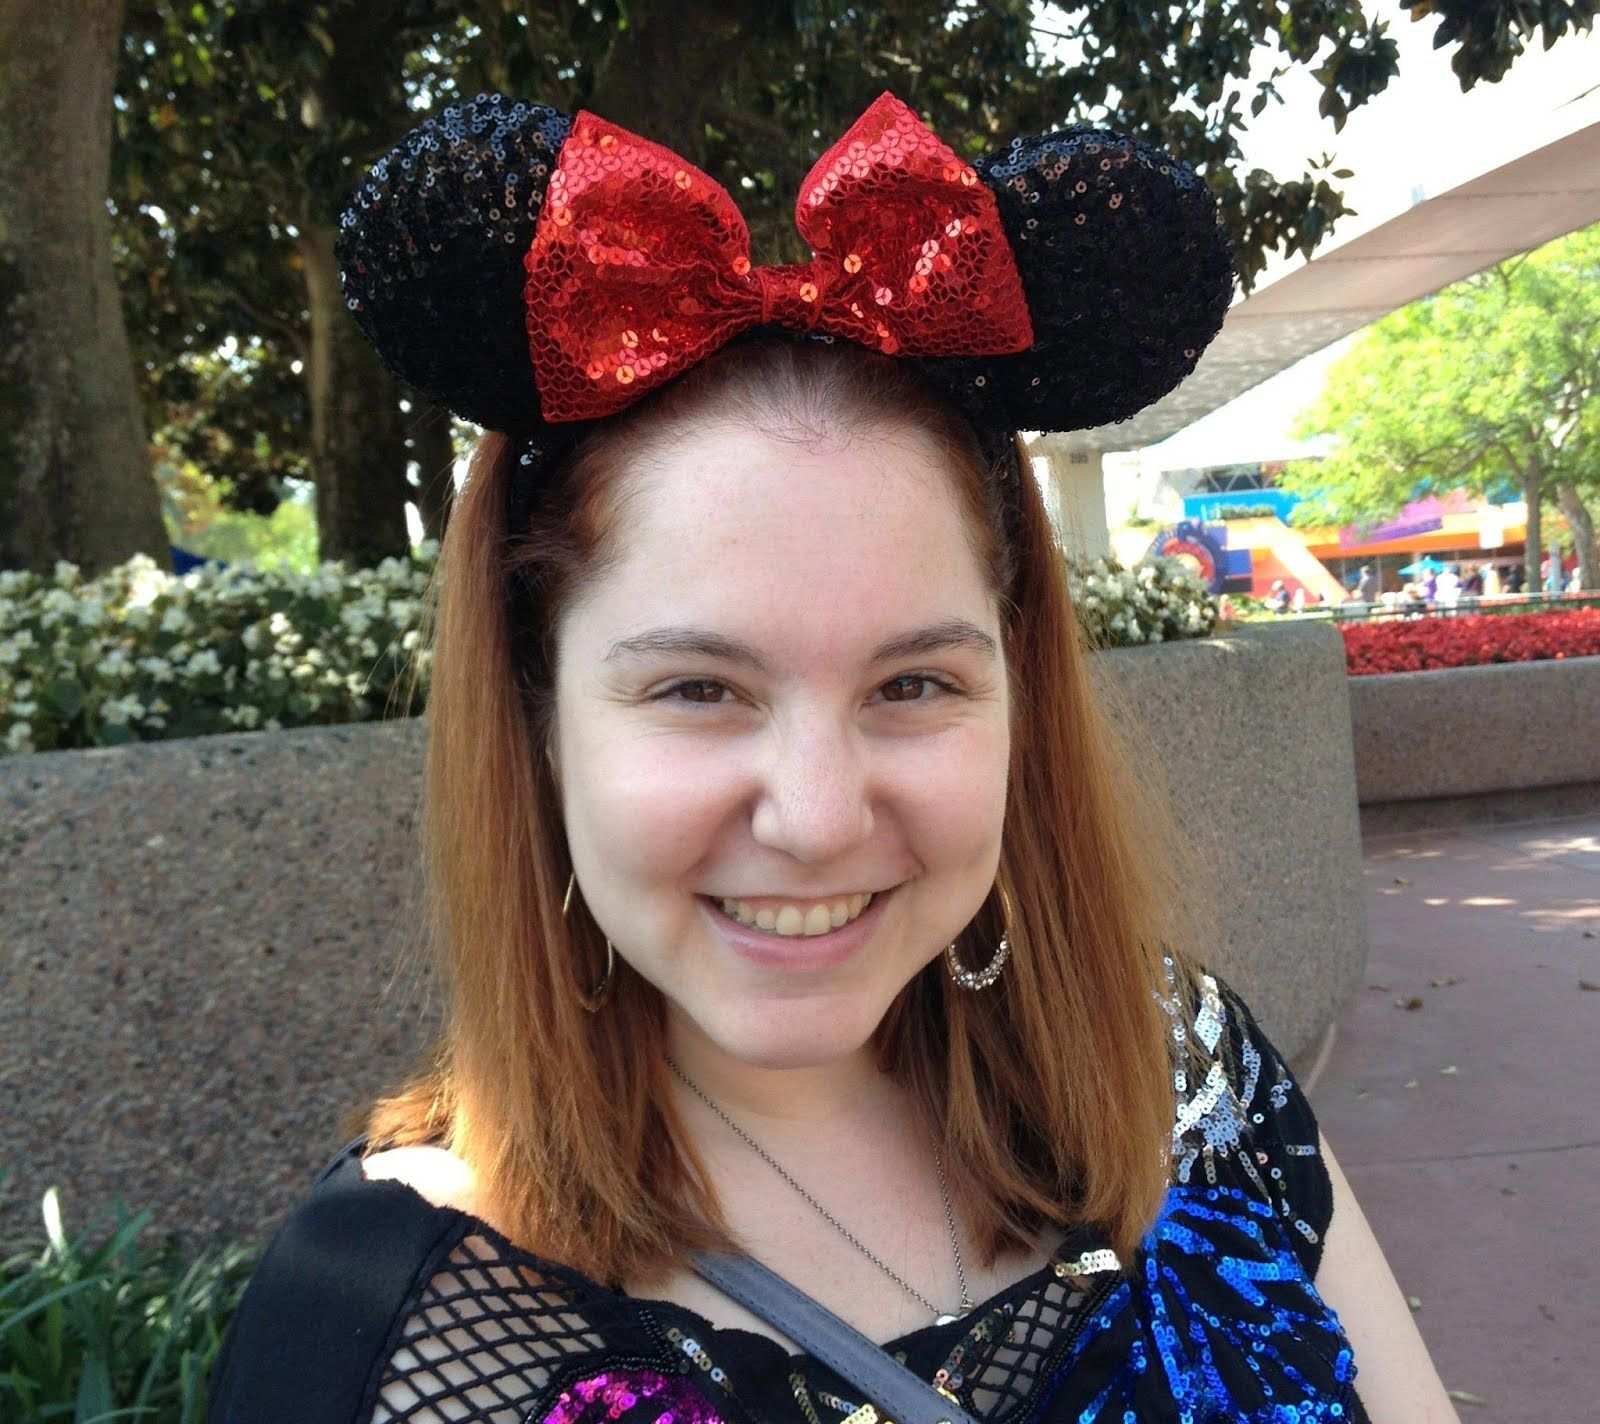 Walt Disney World: My Top 10 List for the Happiest Place on Earth